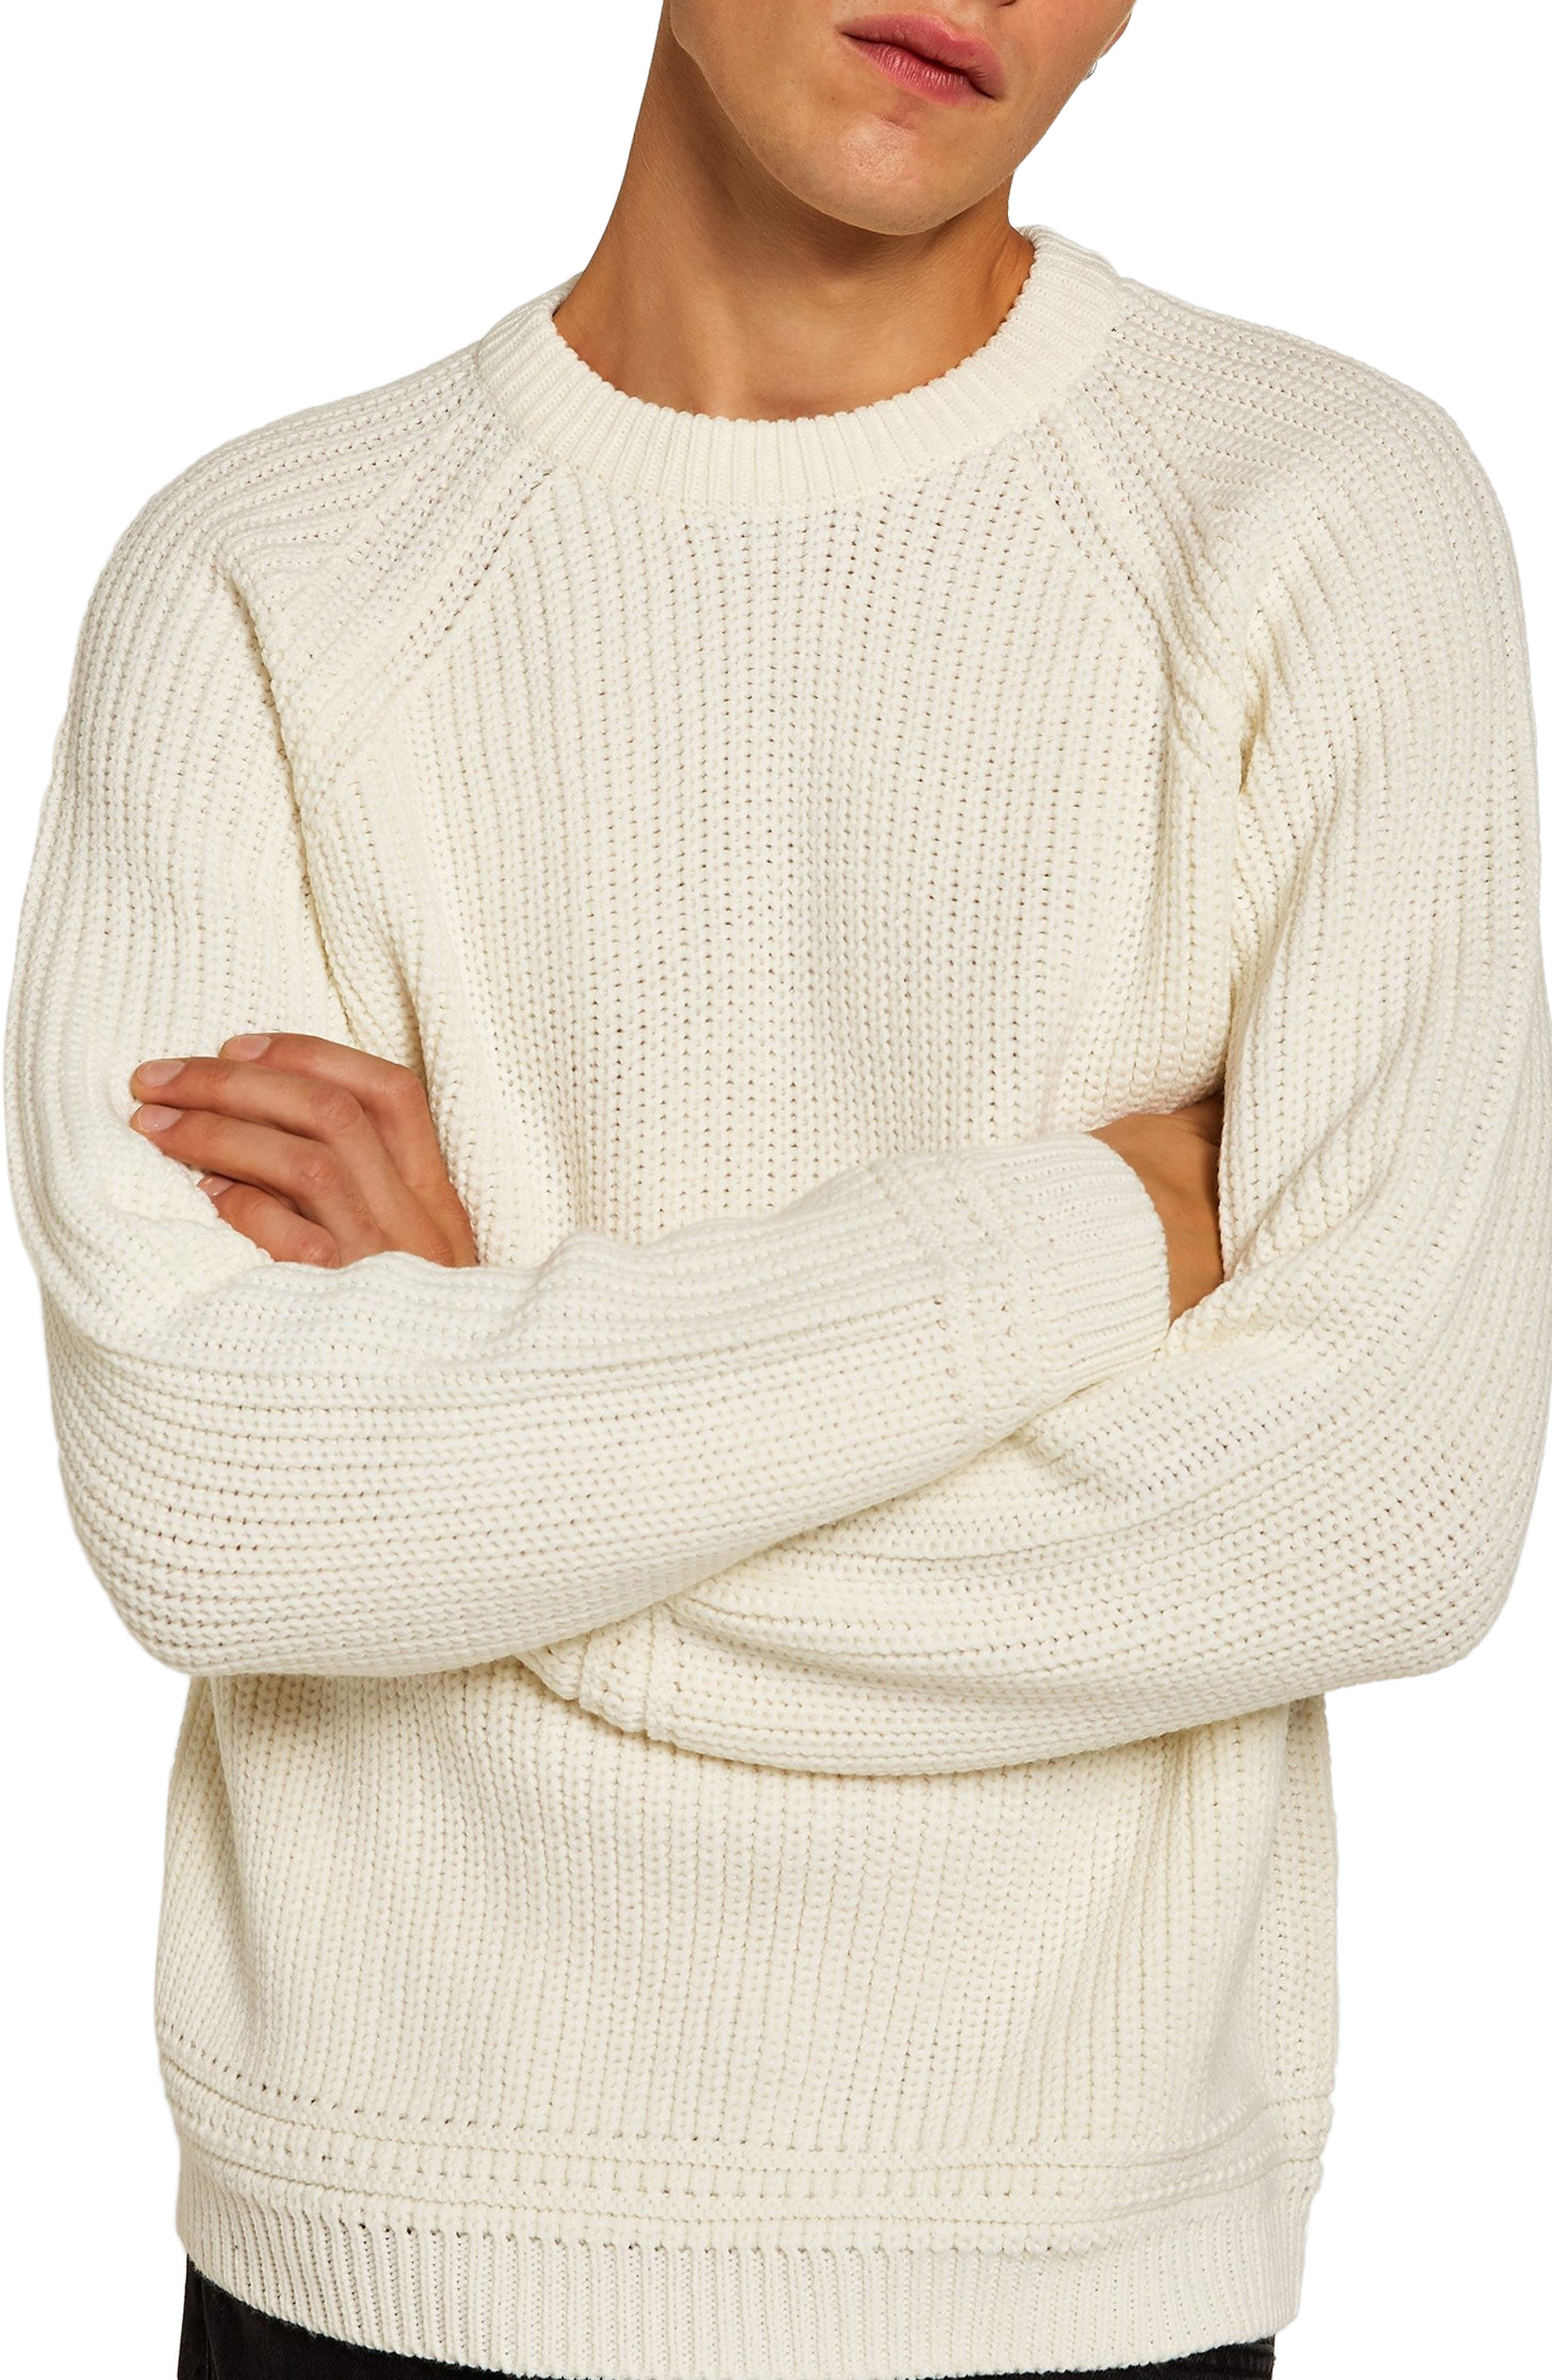 Ribbed Sweater,                             Main thumbnail 1, color,                             900